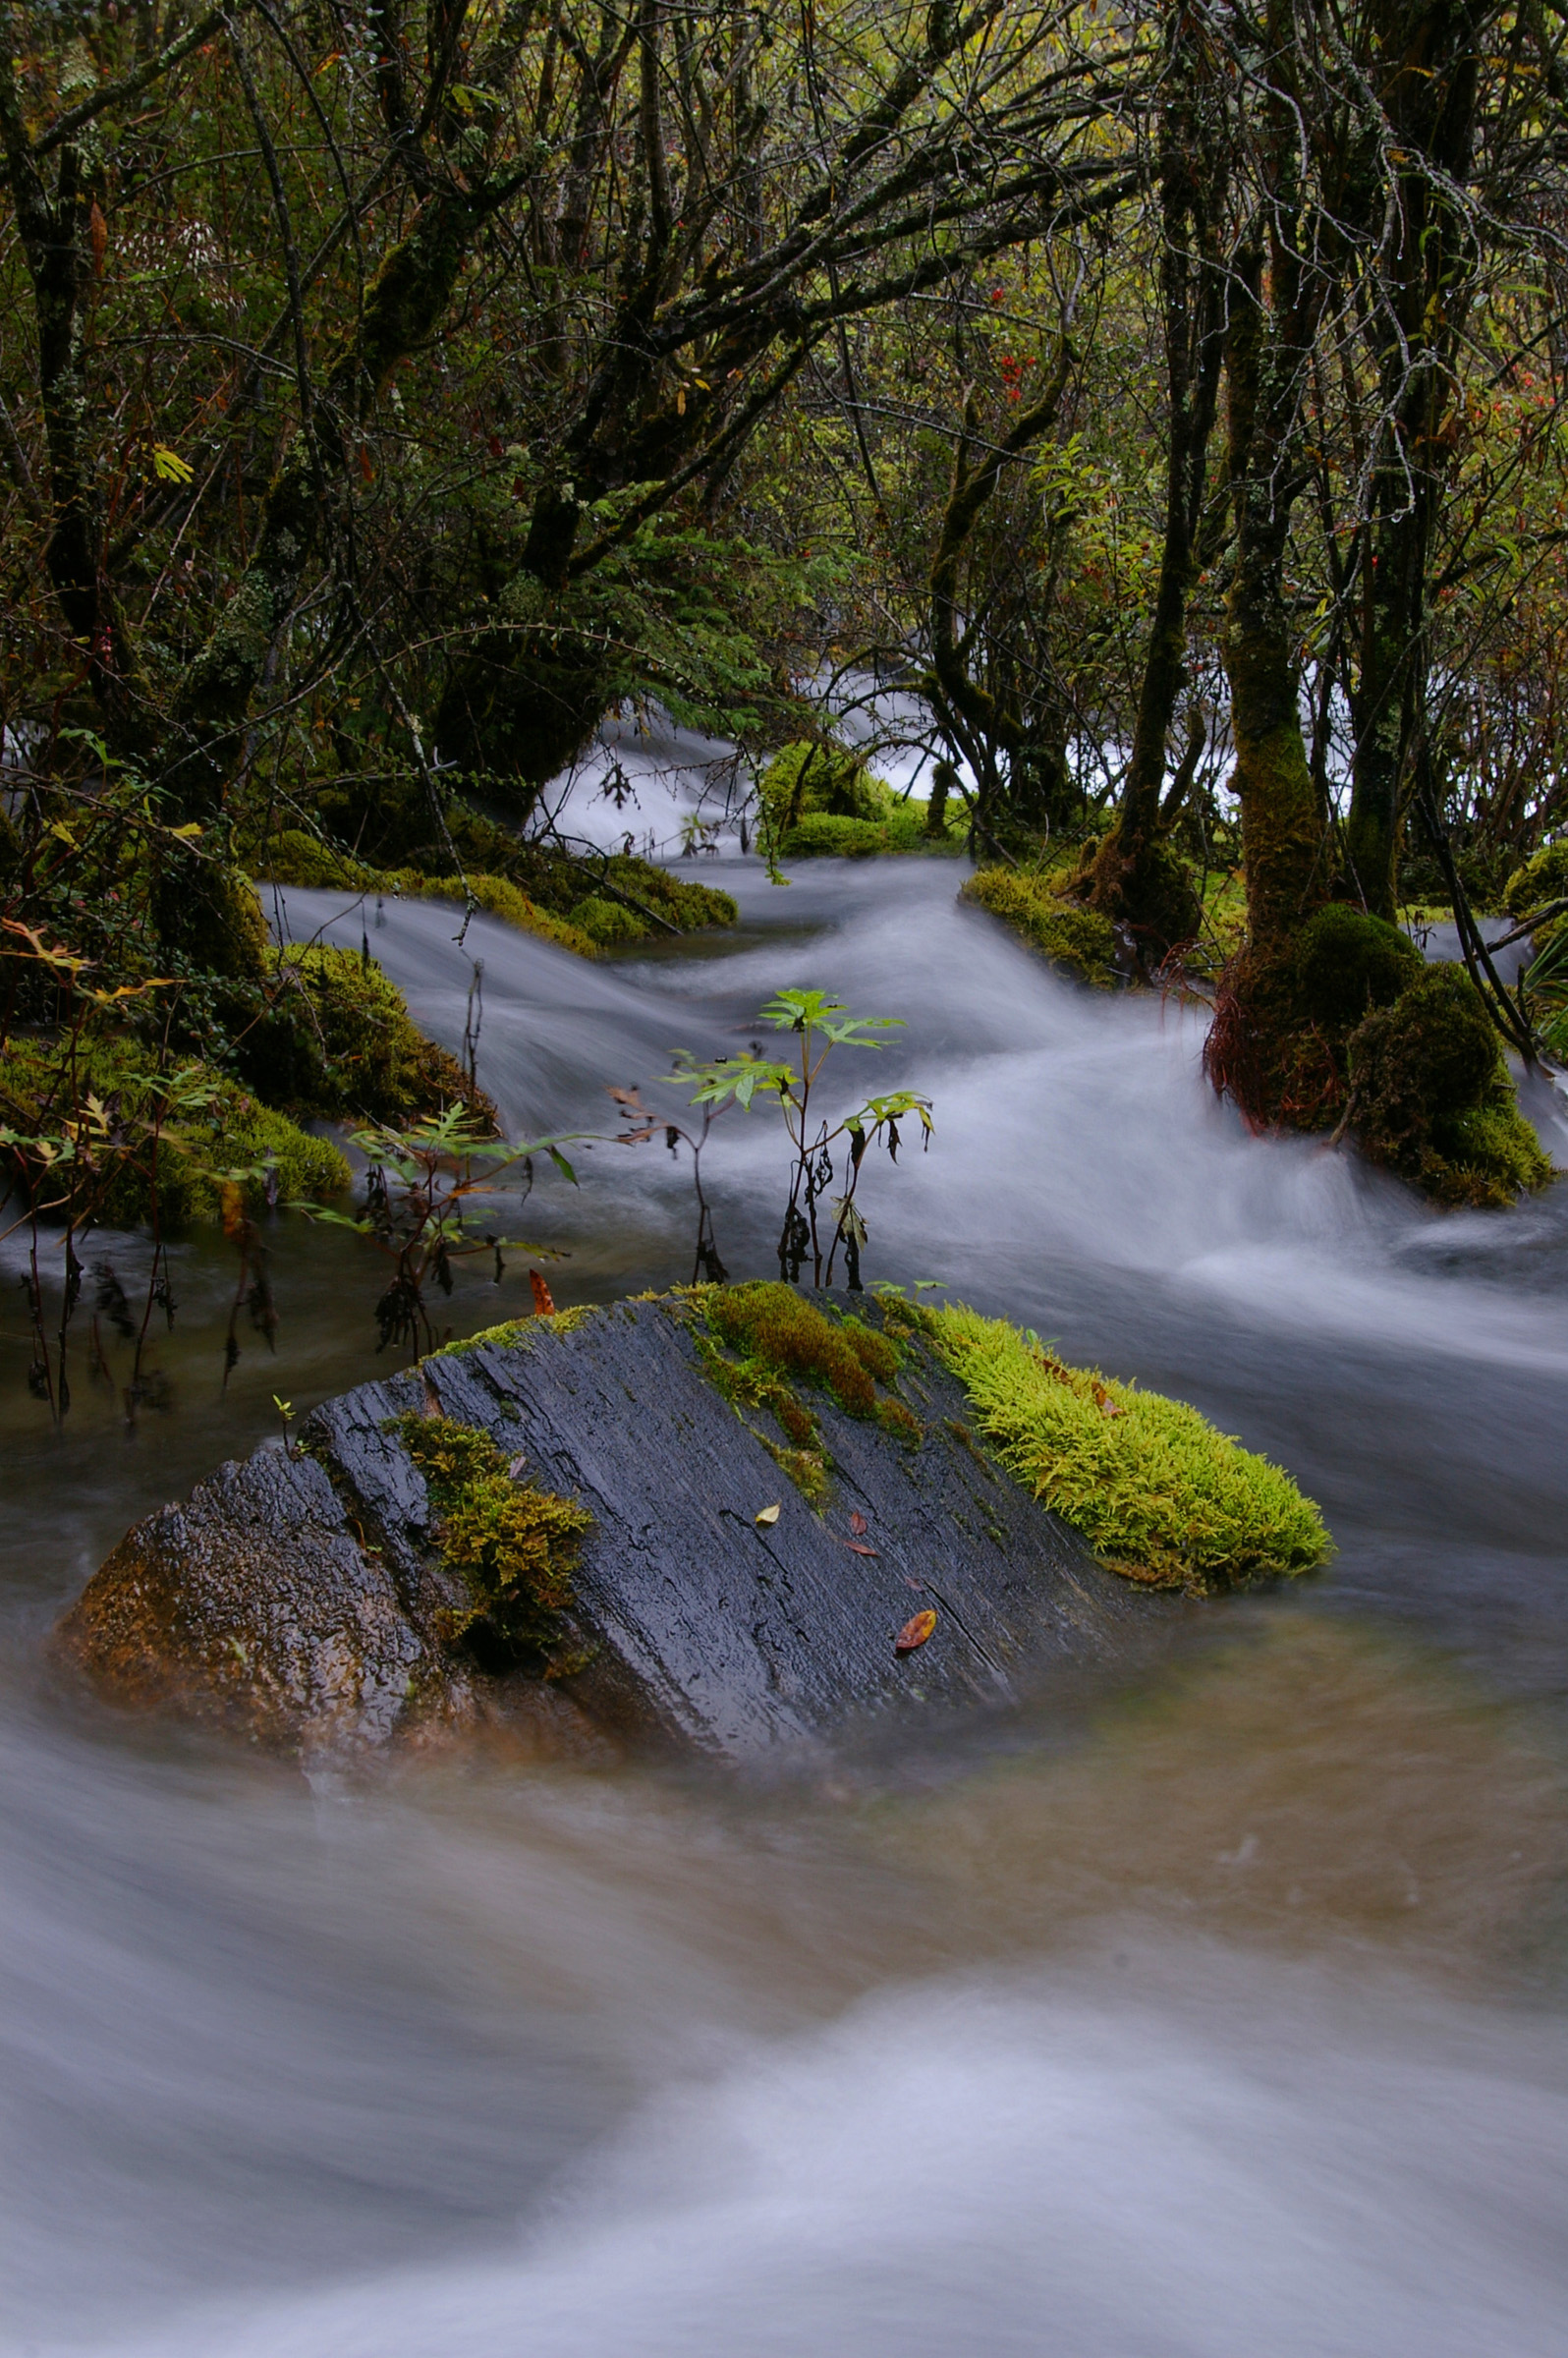 Long exposure of a mossy stream flowing over rocks in a woodland landscape showing the scenic natural beauty of the environment